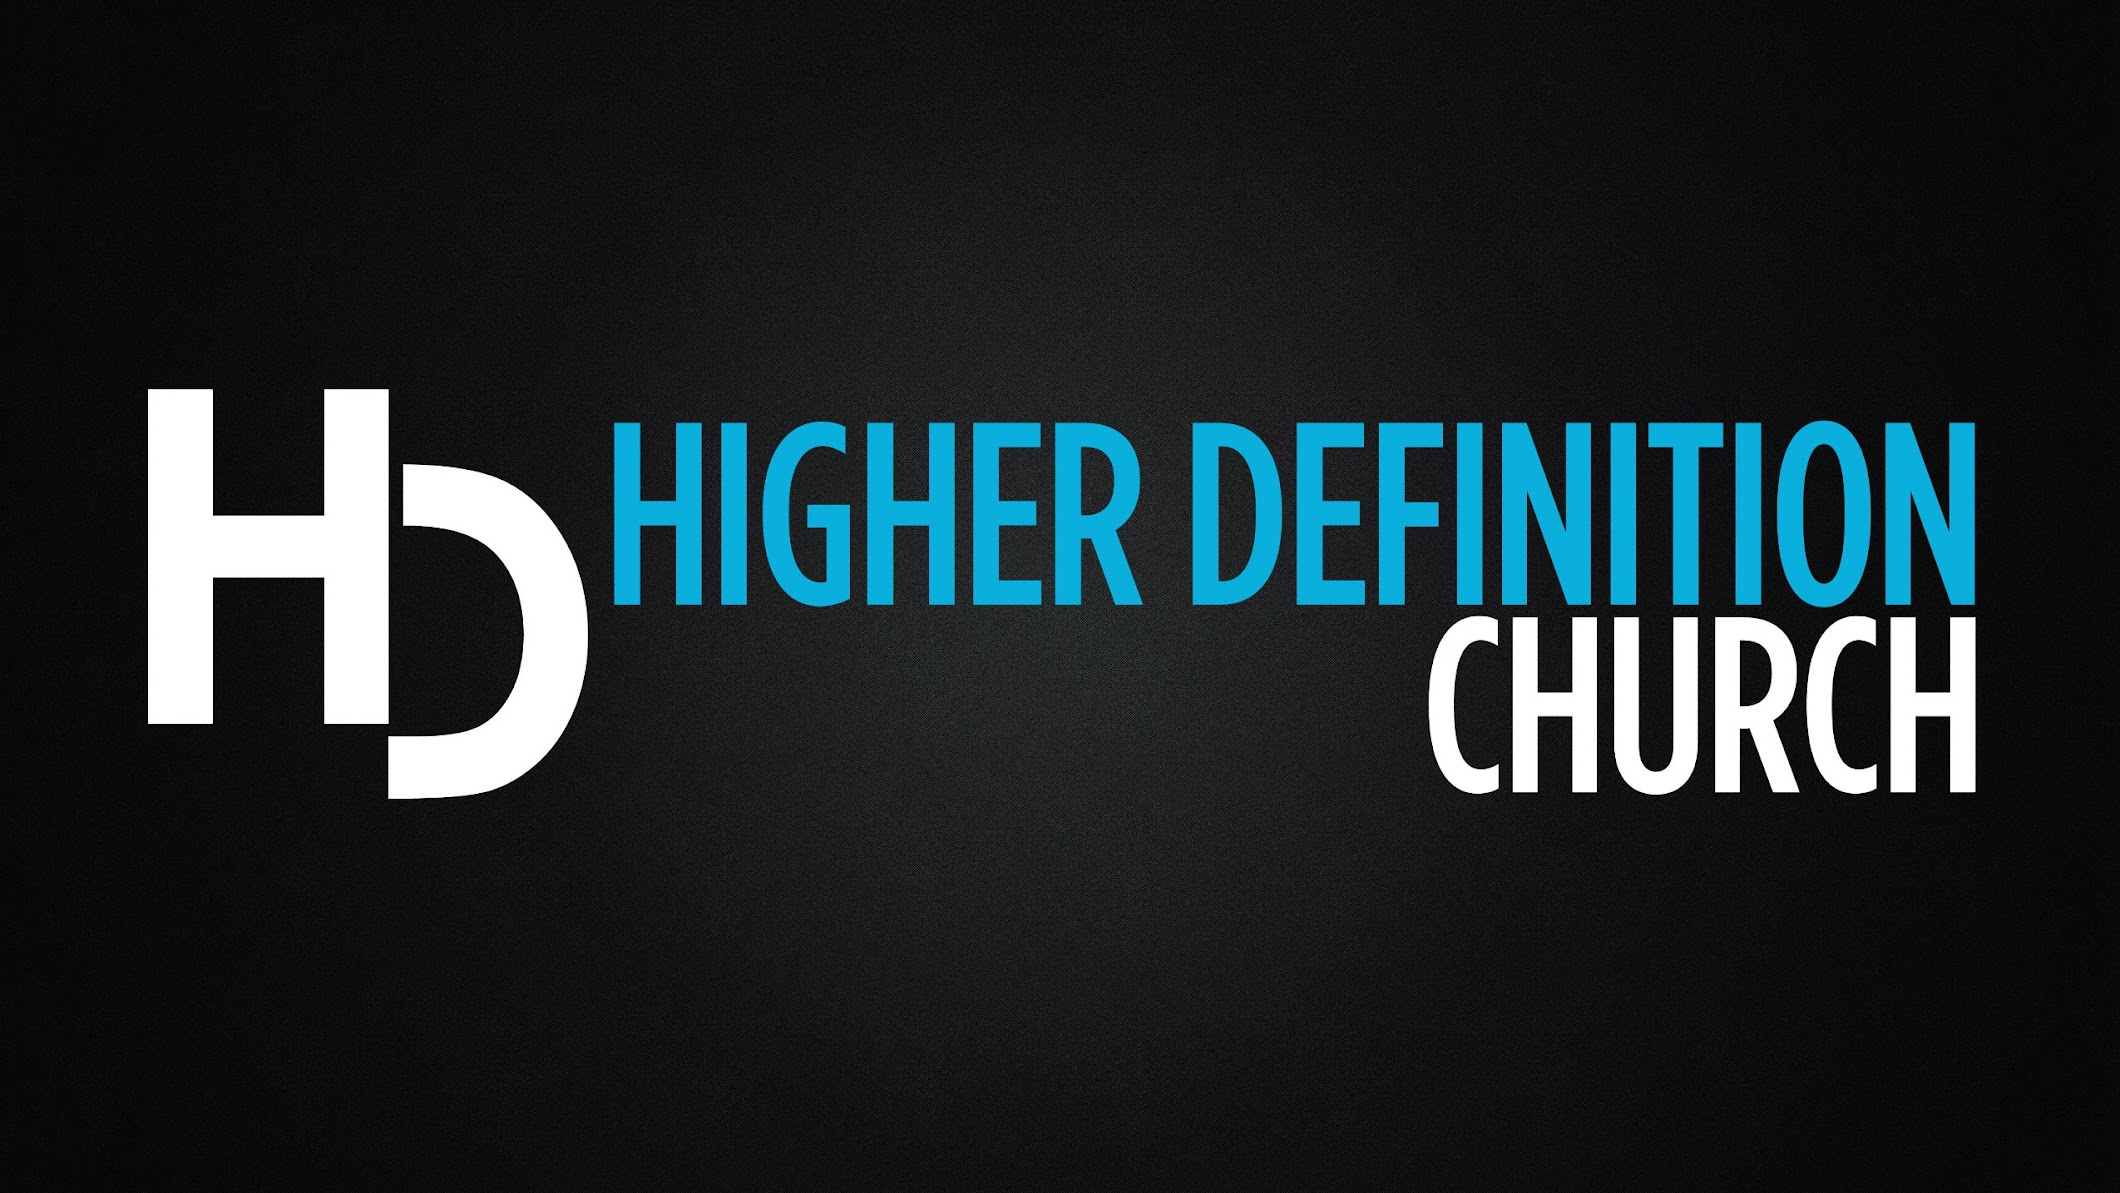 Higher Definition Church